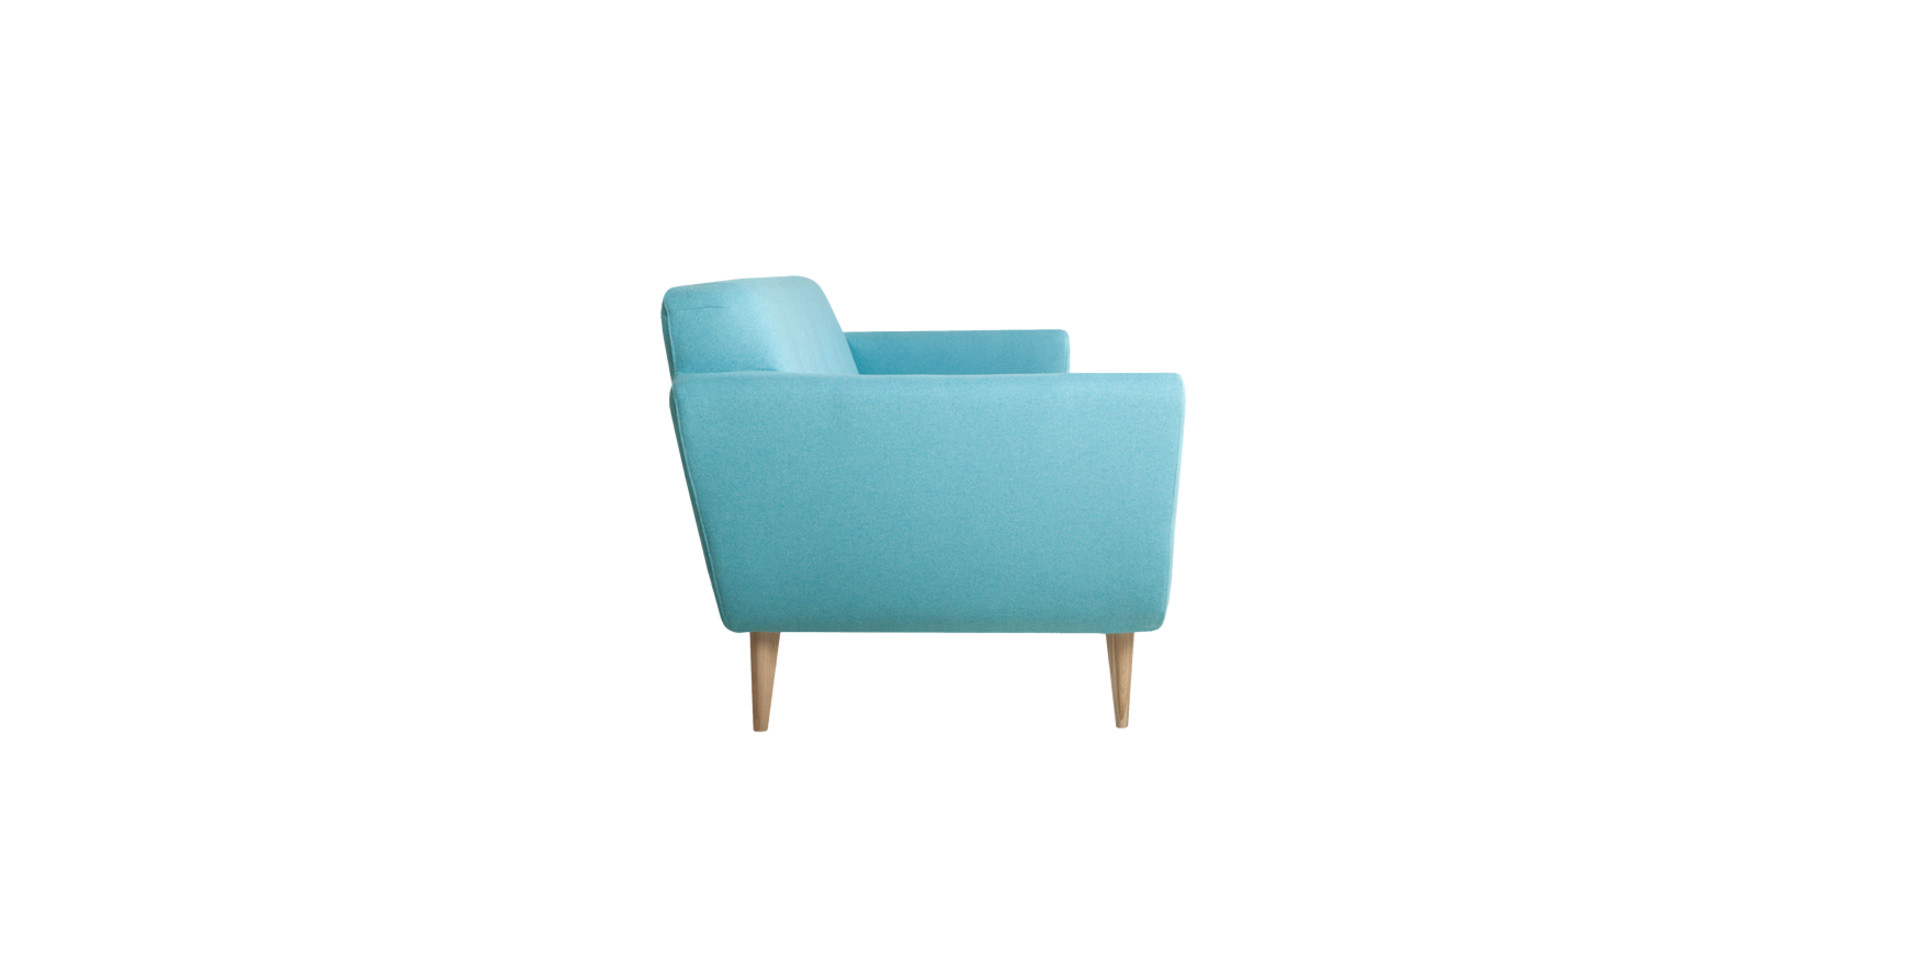 sits-otto-canape-3seater_panno2274_light_turquoise_3